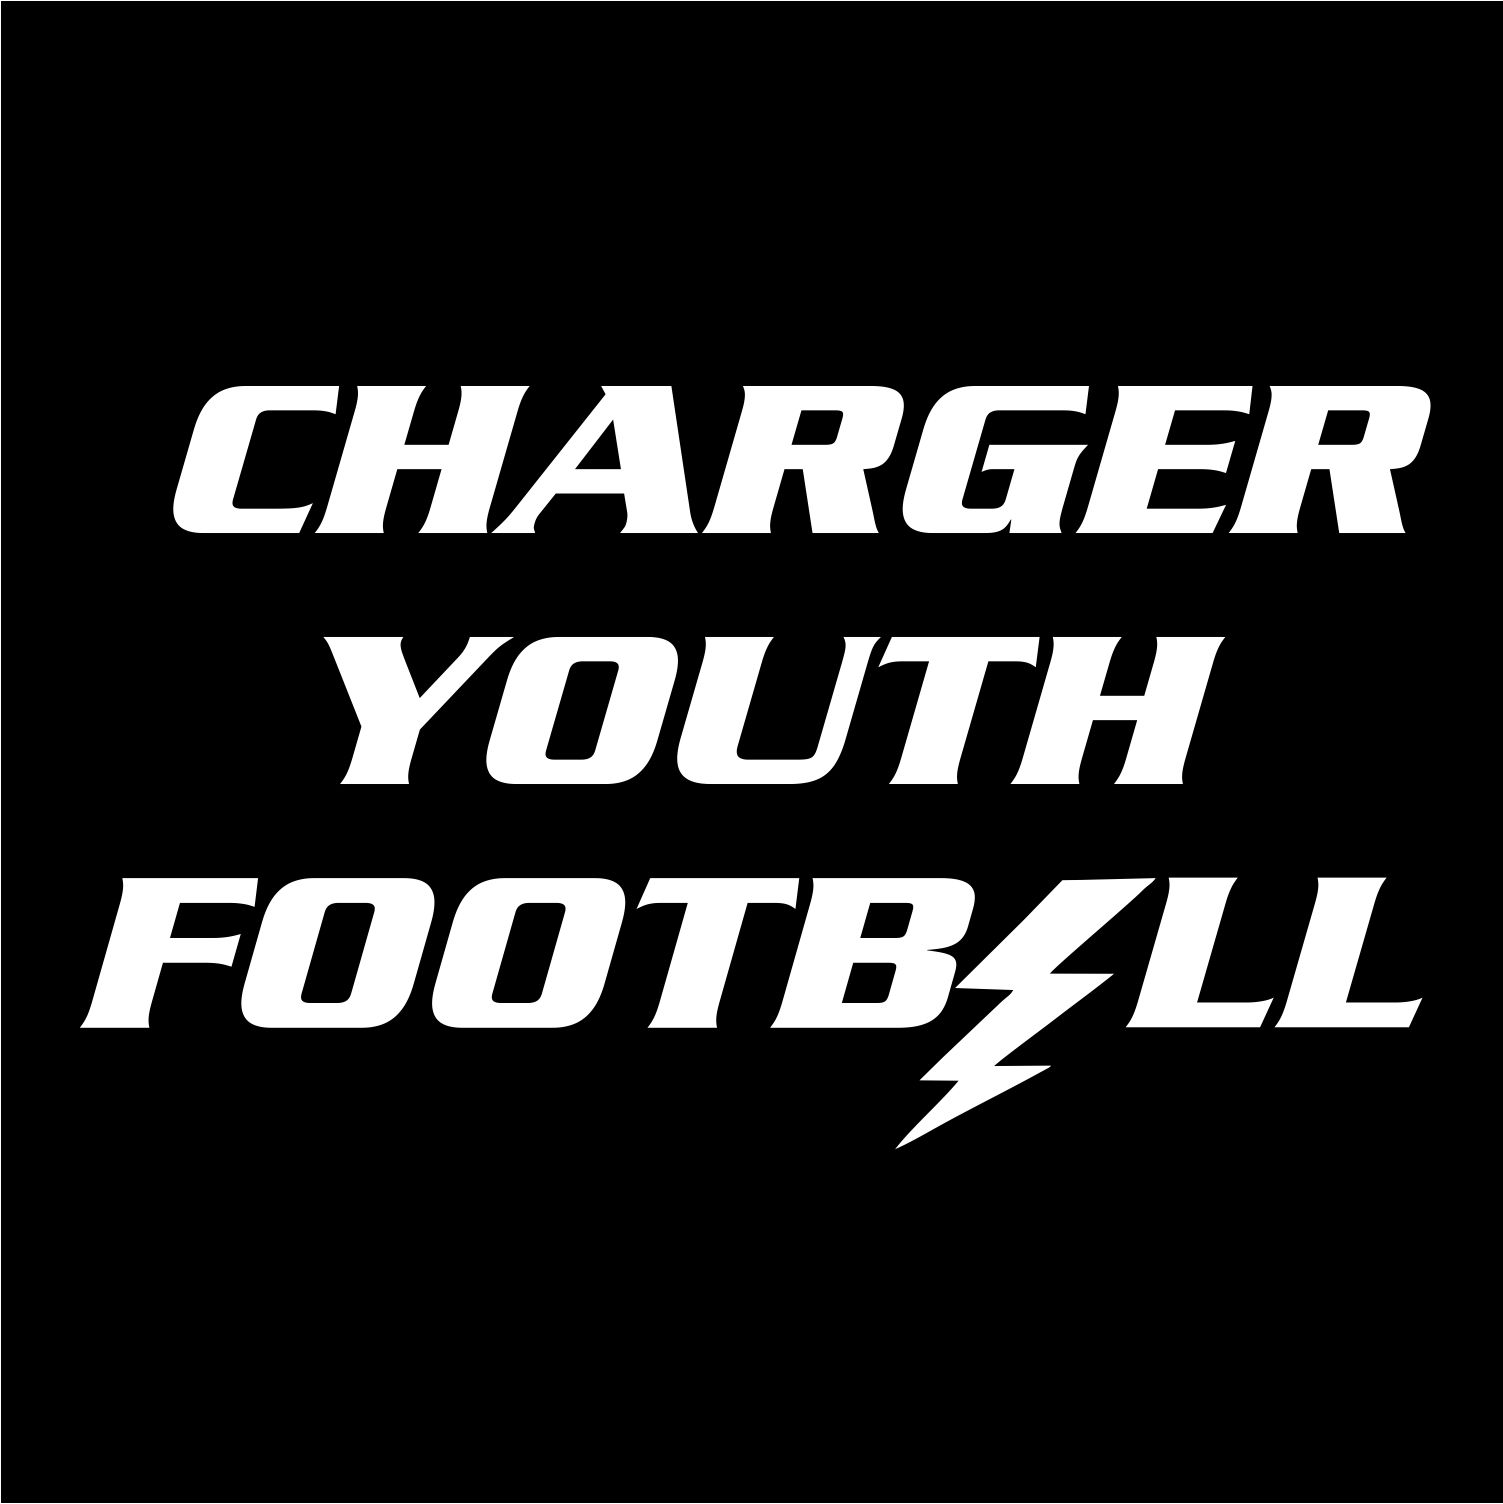 Charger Youth Football